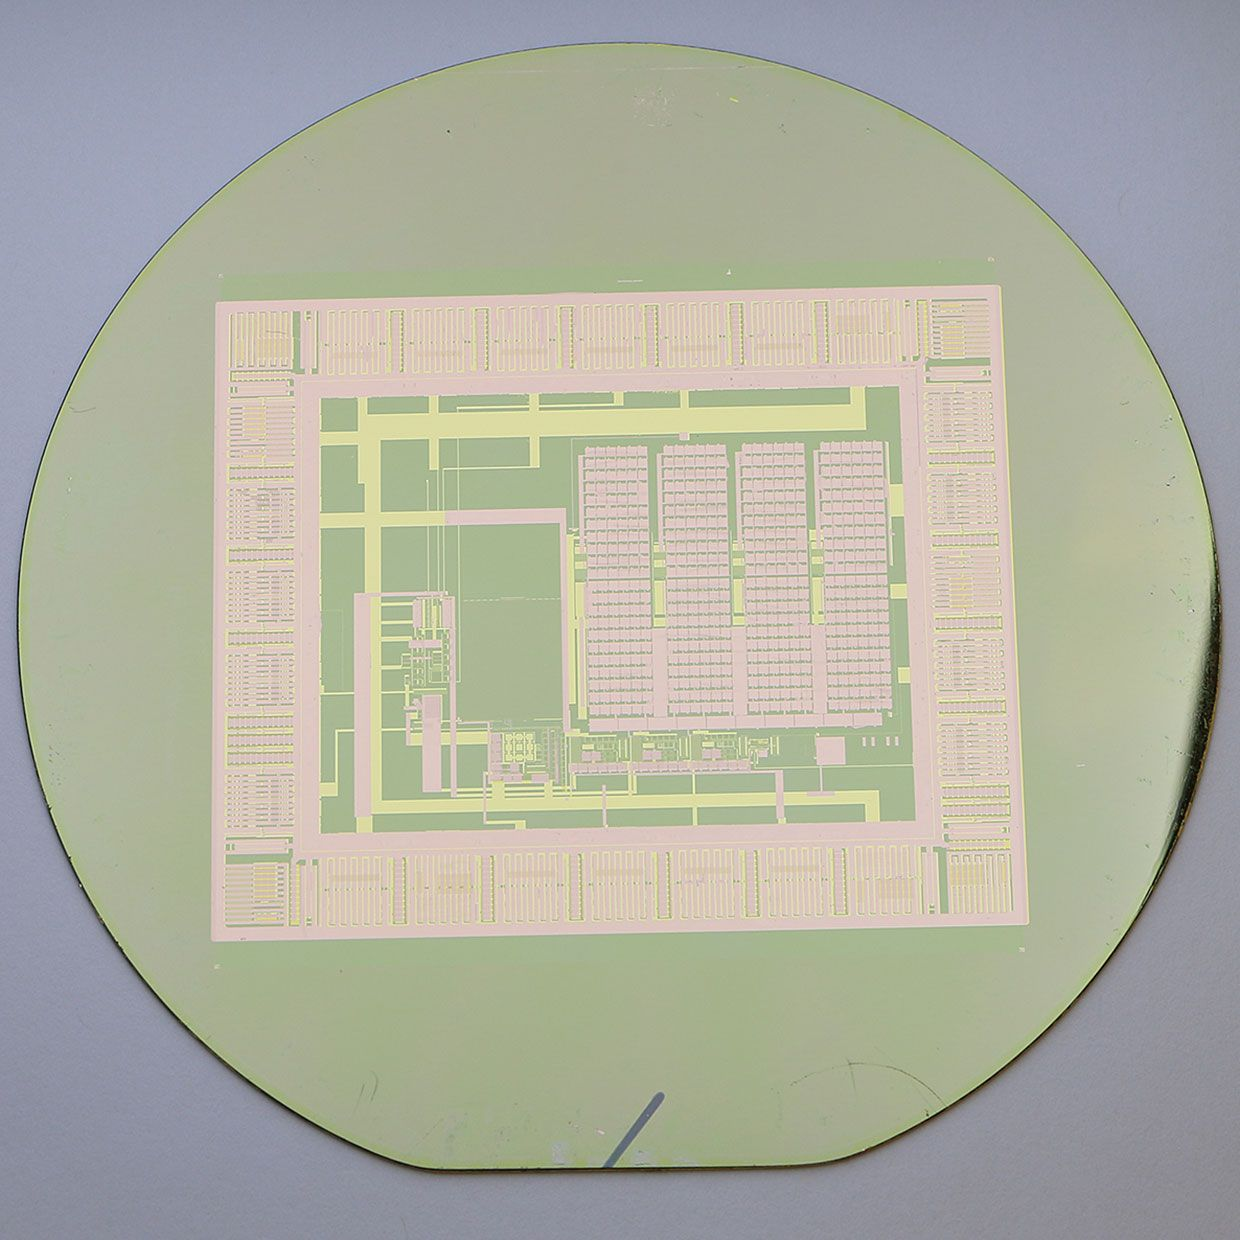 The thin-film electronic circuit can peel easily from its silicon wafer with water, making the wafer reusable for building a nearly infinite number of circuits.